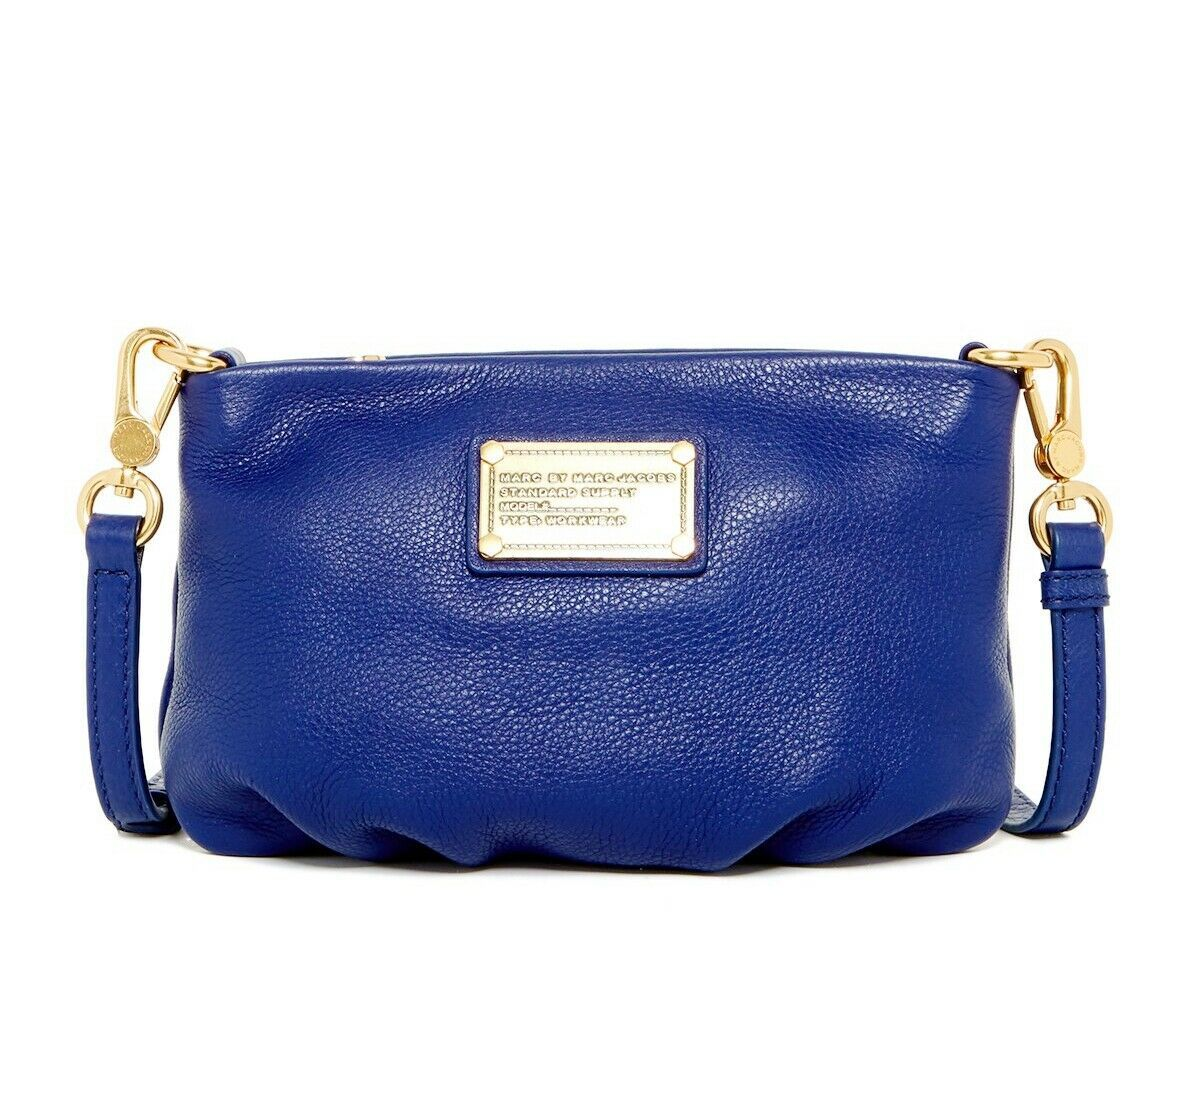 Primary image for New MARC By MARC JACOBS Classic Q Percy Leather Crossbody Bag Mineral BLUE $198+